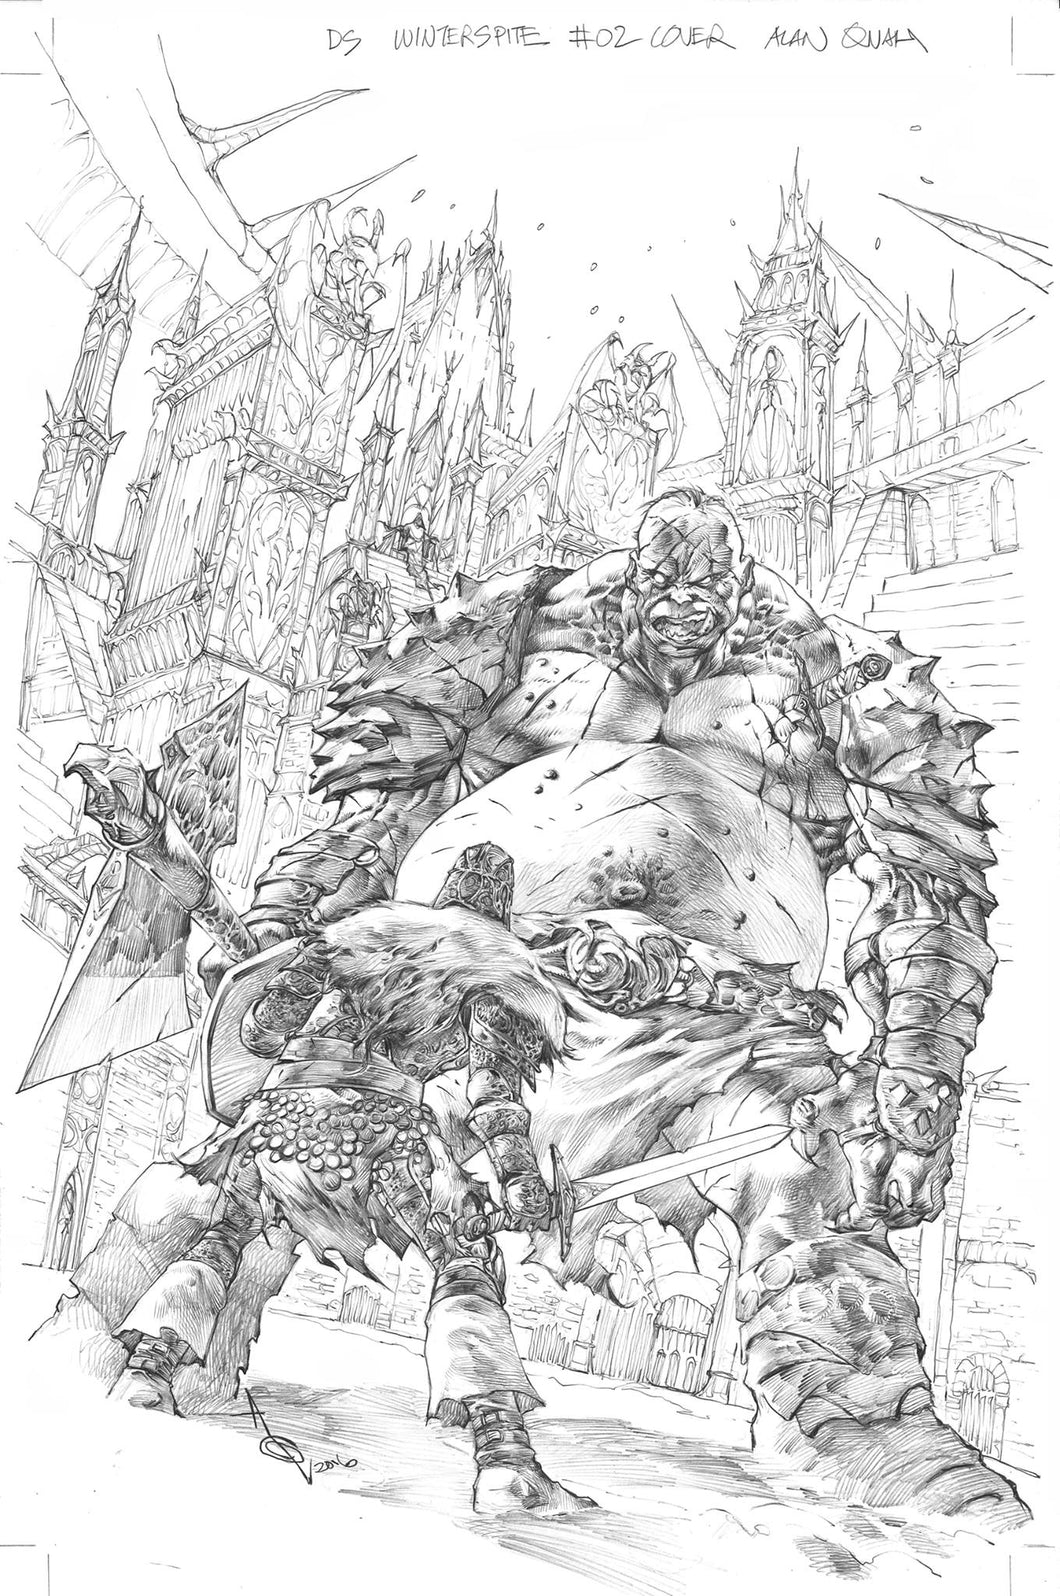 Alan Quah Original Art Dark Souls Winter's Spite #2 Cover